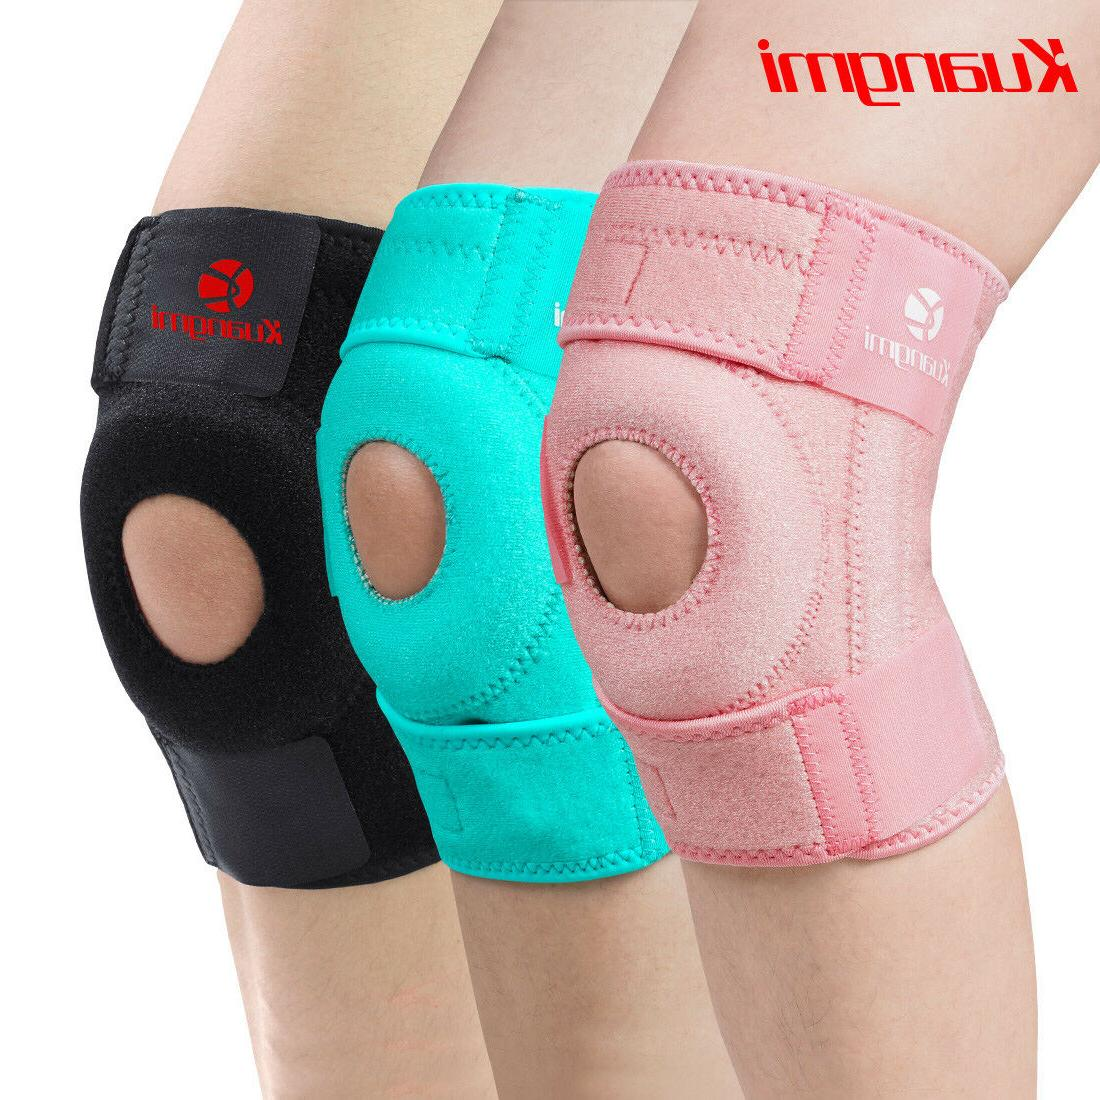 knee brace support open patella stabilizer protector